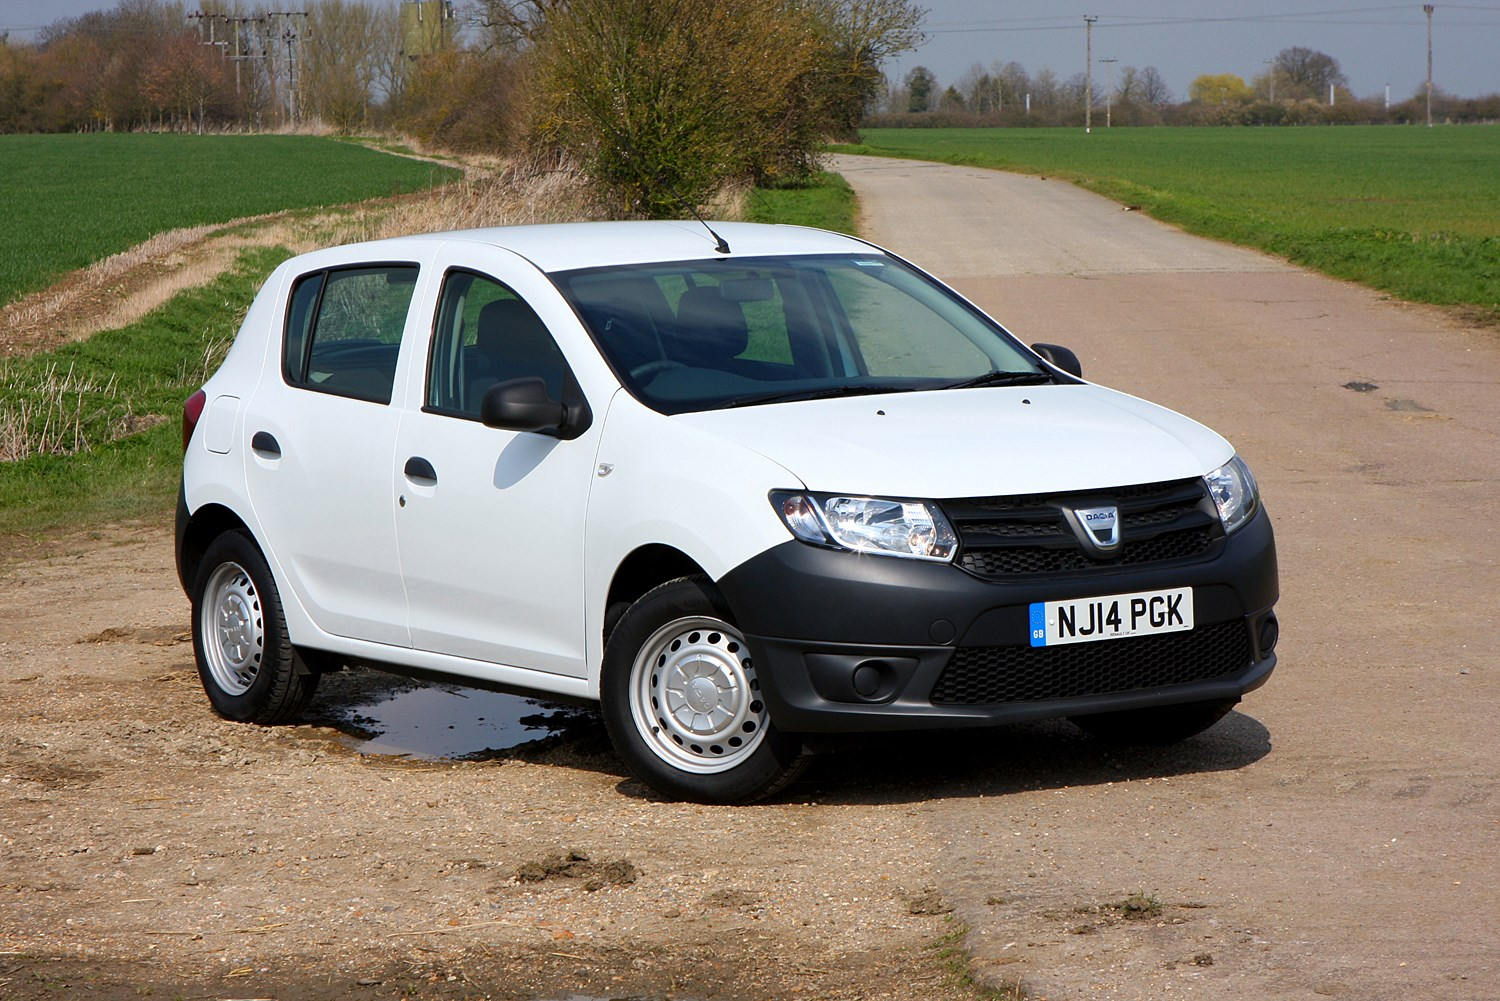 dacia sandero hatchback 2013 features equipment and accessories parkers. Black Bedroom Furniture Sets. Home Design Ideas